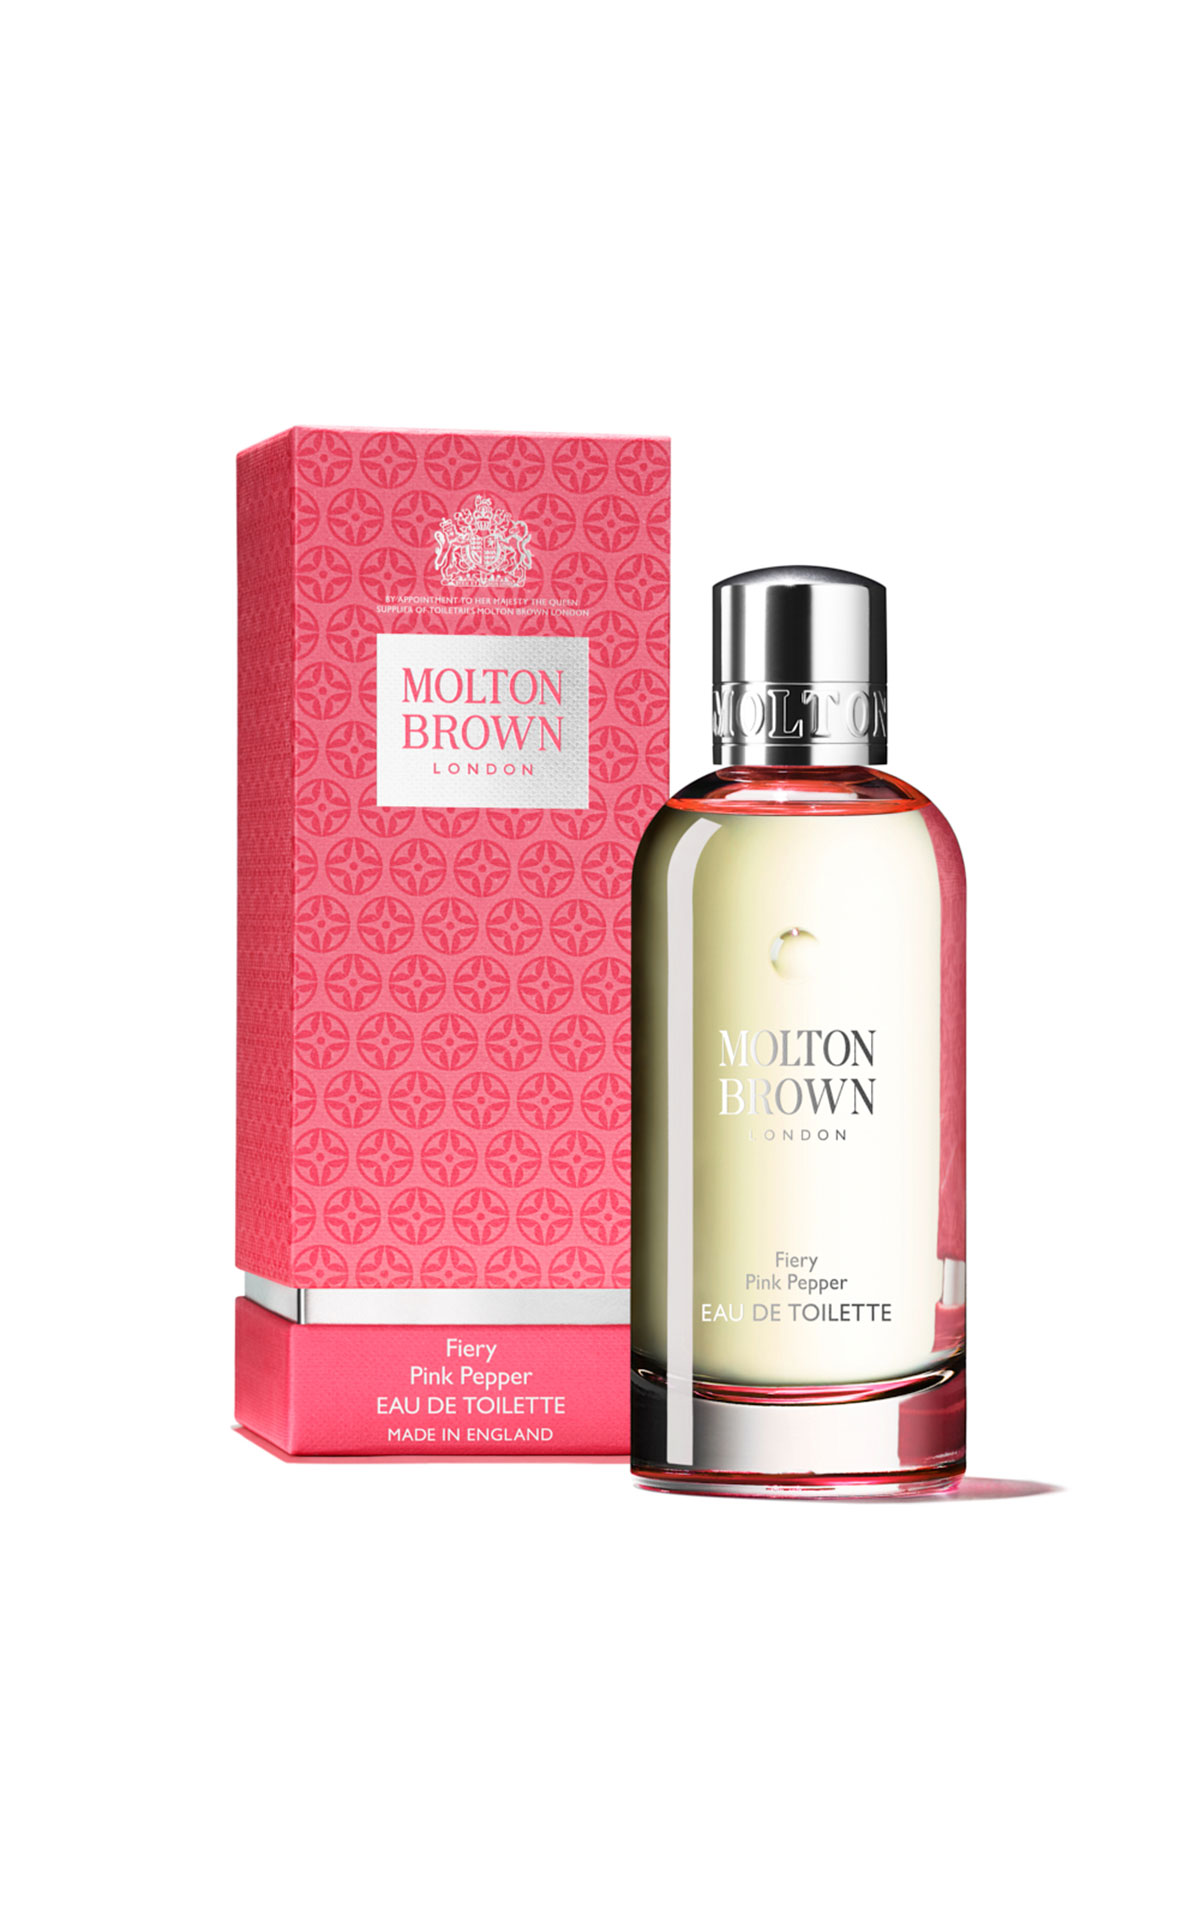 Molton Brown Fiery pink pepper eau de toilette 100ml from Bicester Village